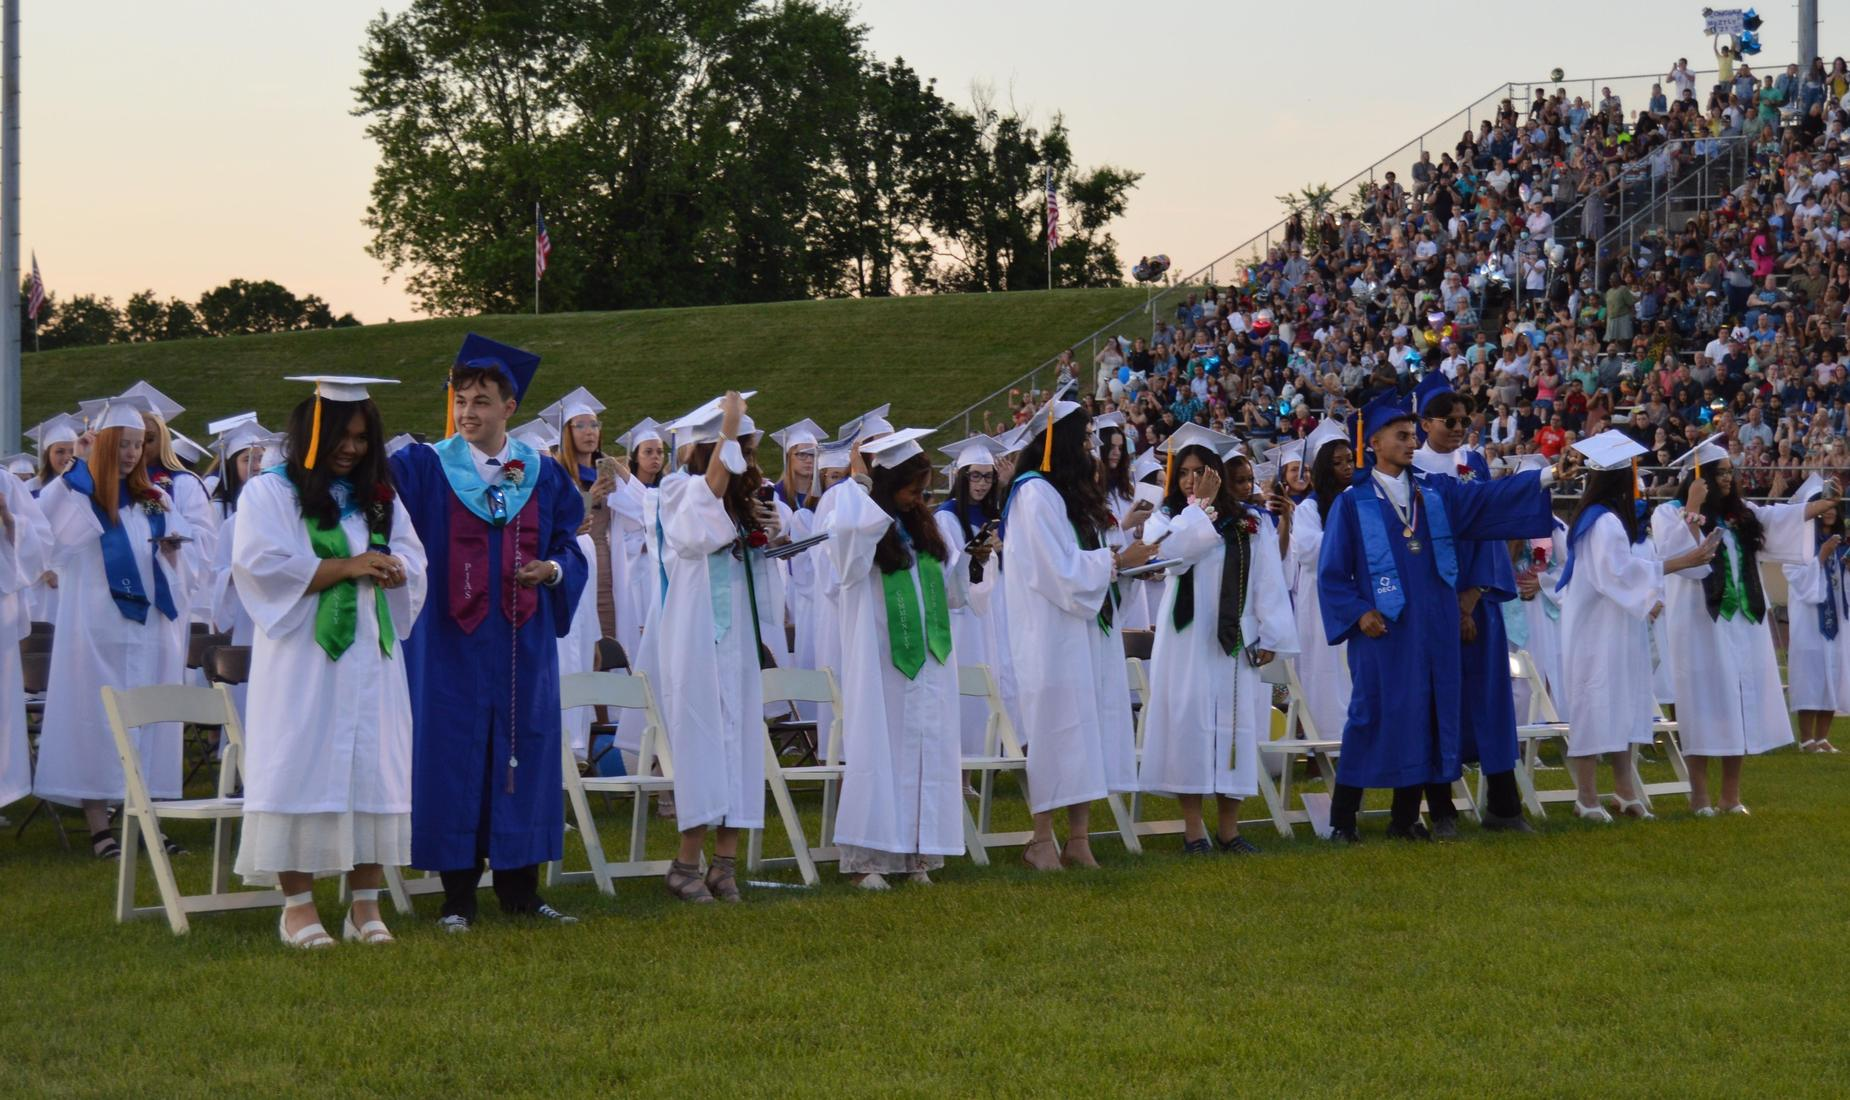 BHS seniors, girls in white gowns and boys in royal blue gowns ready to move their tassel as they are announced as graduates